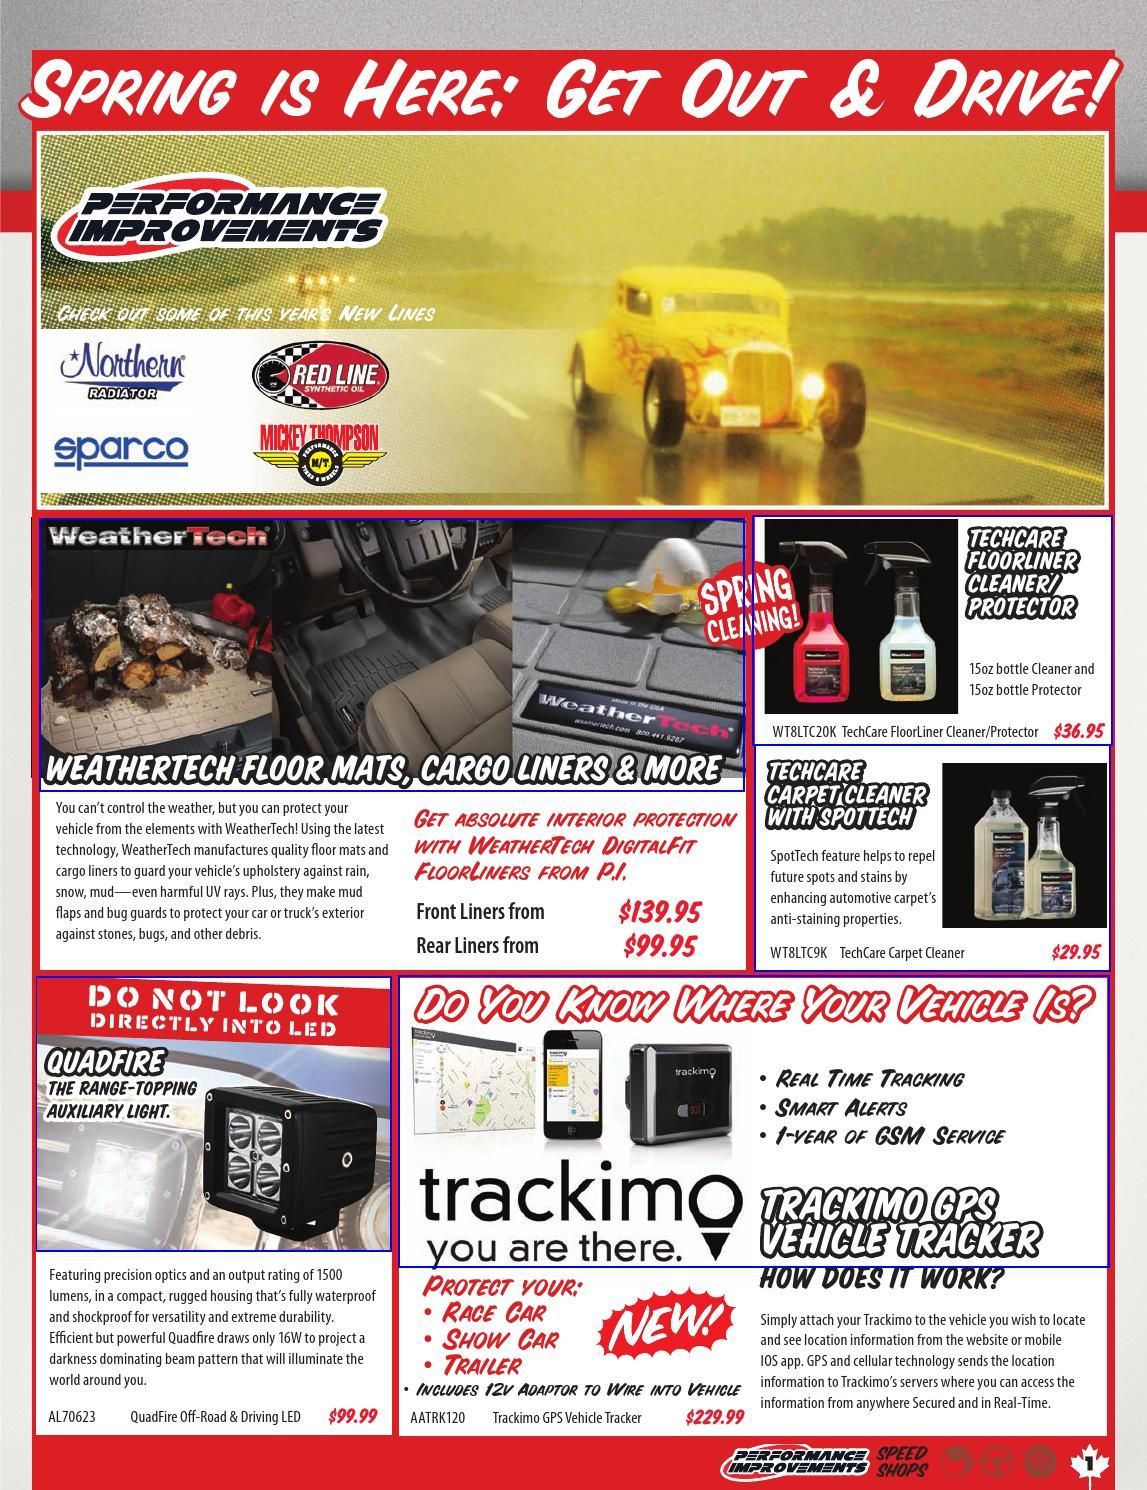 Weathertech floor mats on sale - Spring Sale 2015 Savings On Weathertech Floor Mats Cargo Liners Racequip Safety Gear